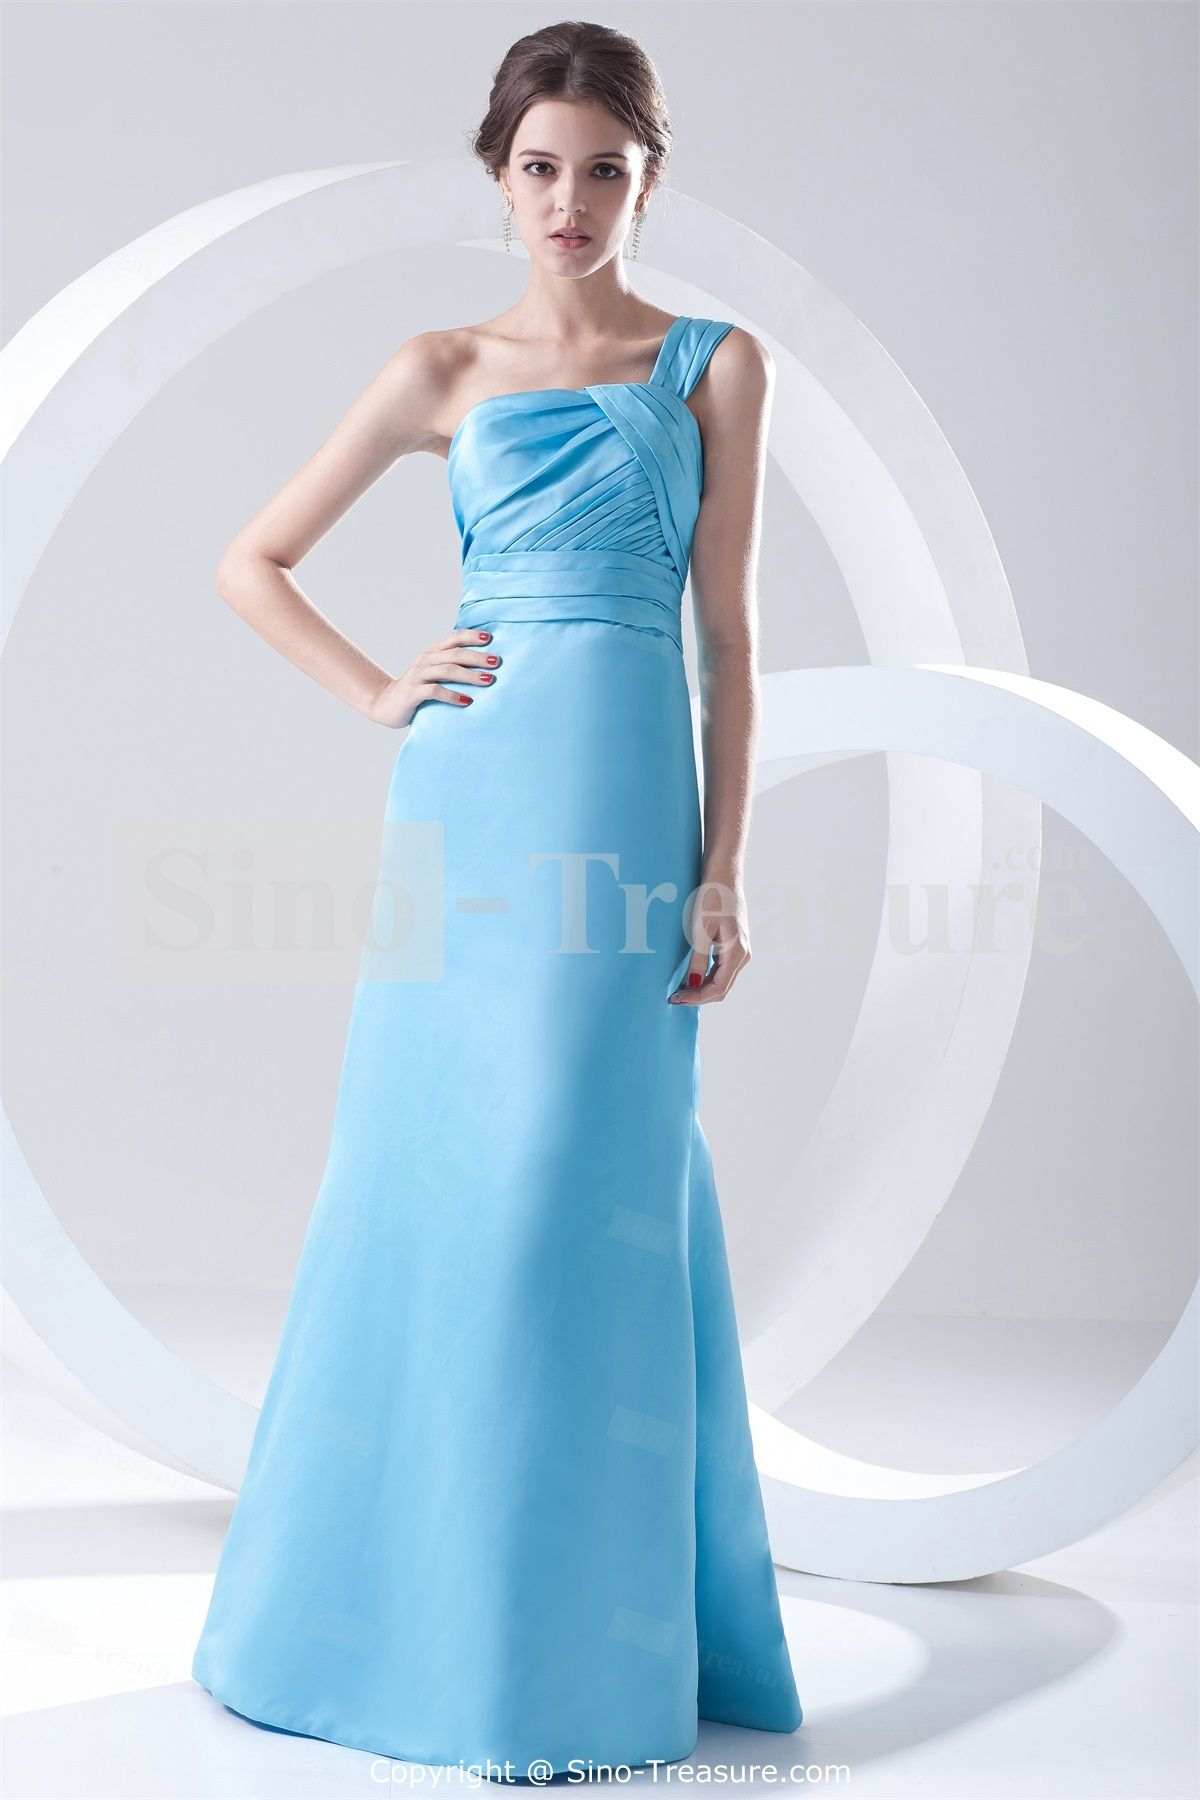 Bridesmaid dresses wonderful light blue country bridesmaid bridesmaid dresses wonderful light blue country ombrellifo Image collections